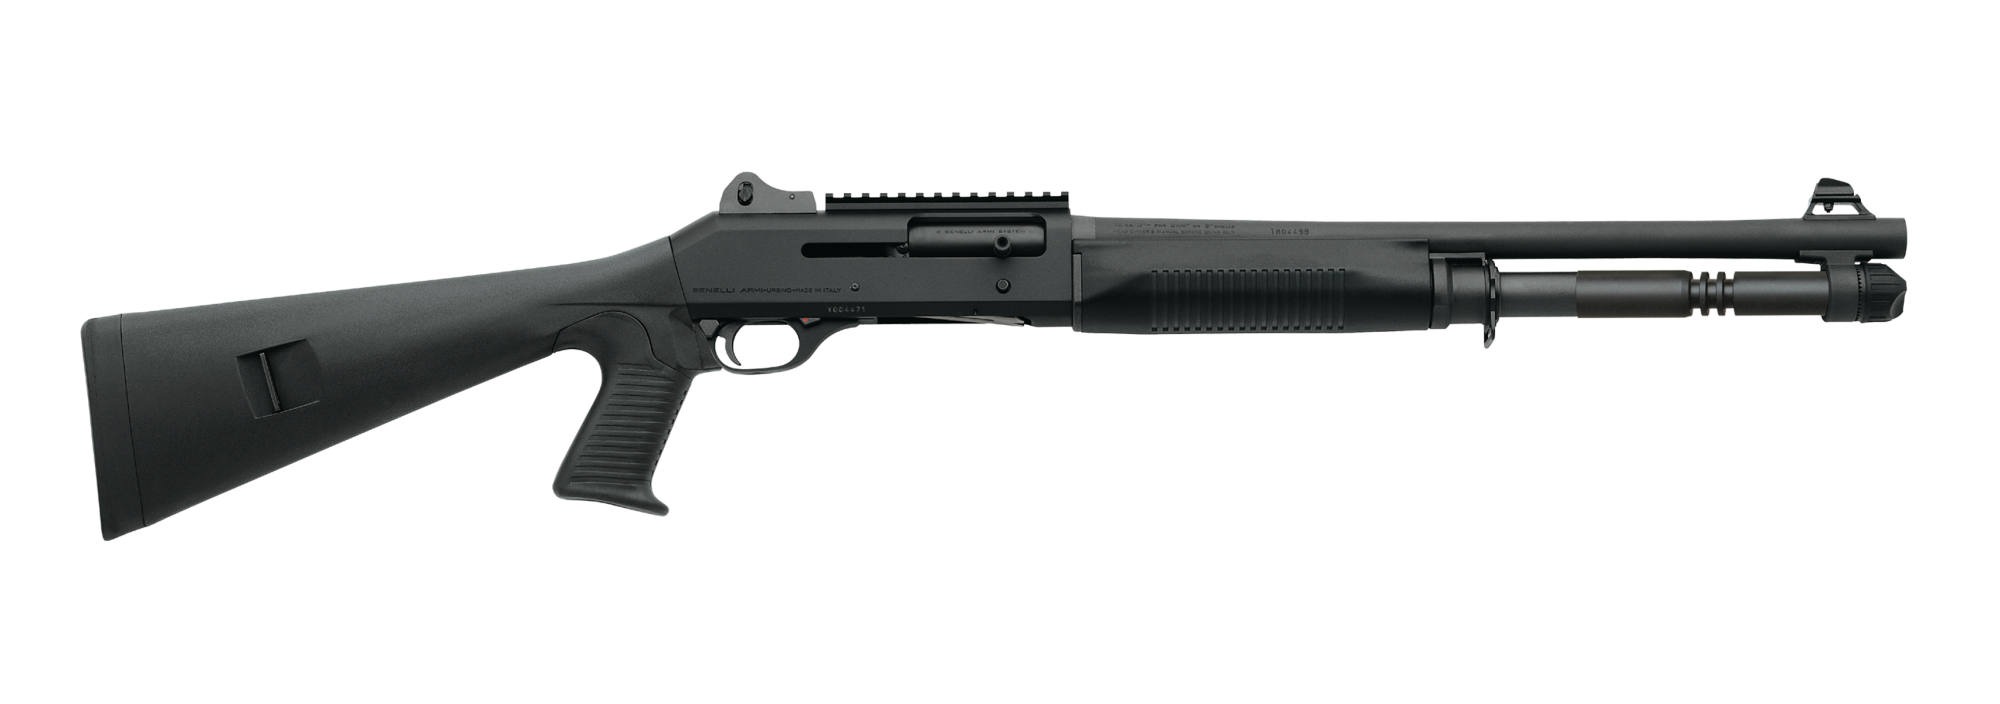 Benelli M4 Tactical Pistol Grip